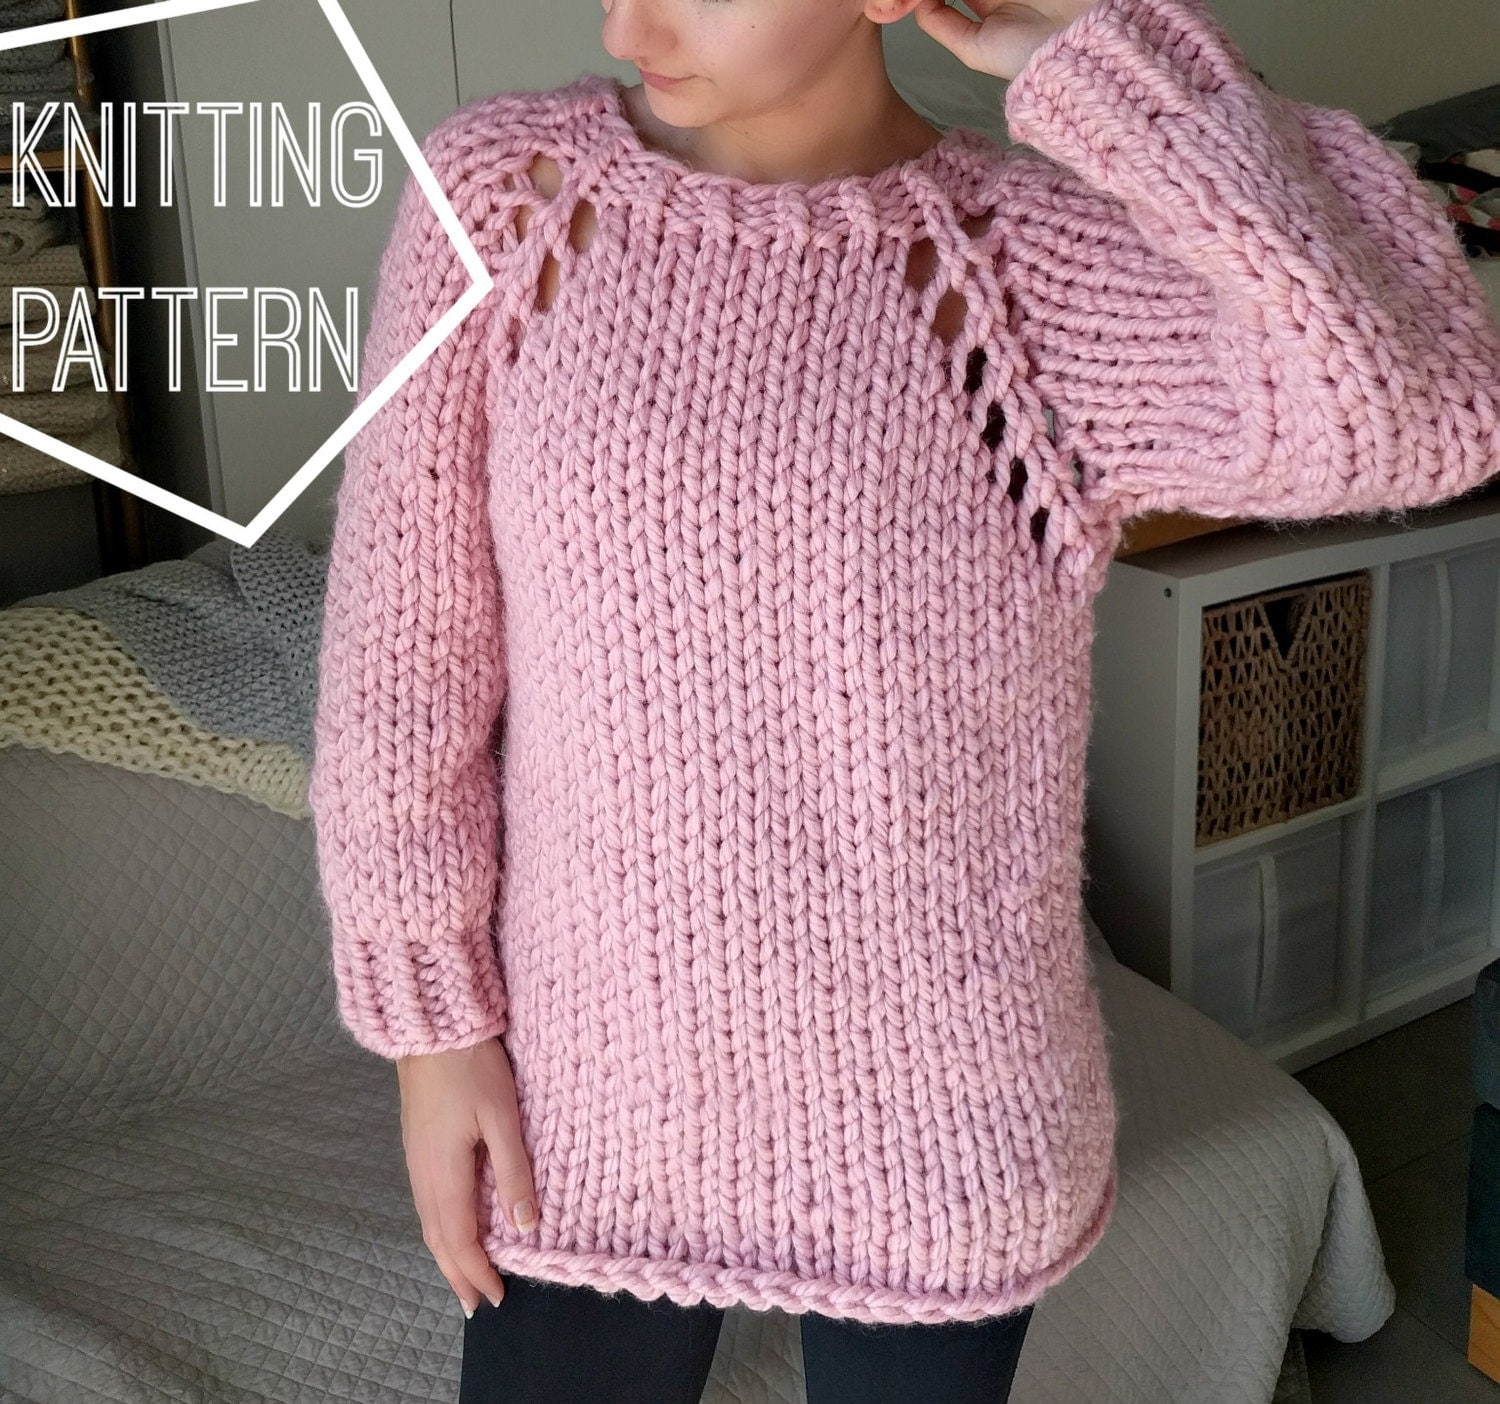 Knitting Sweaters From The Top Down : Chunky knit sweater pattern top down raglan